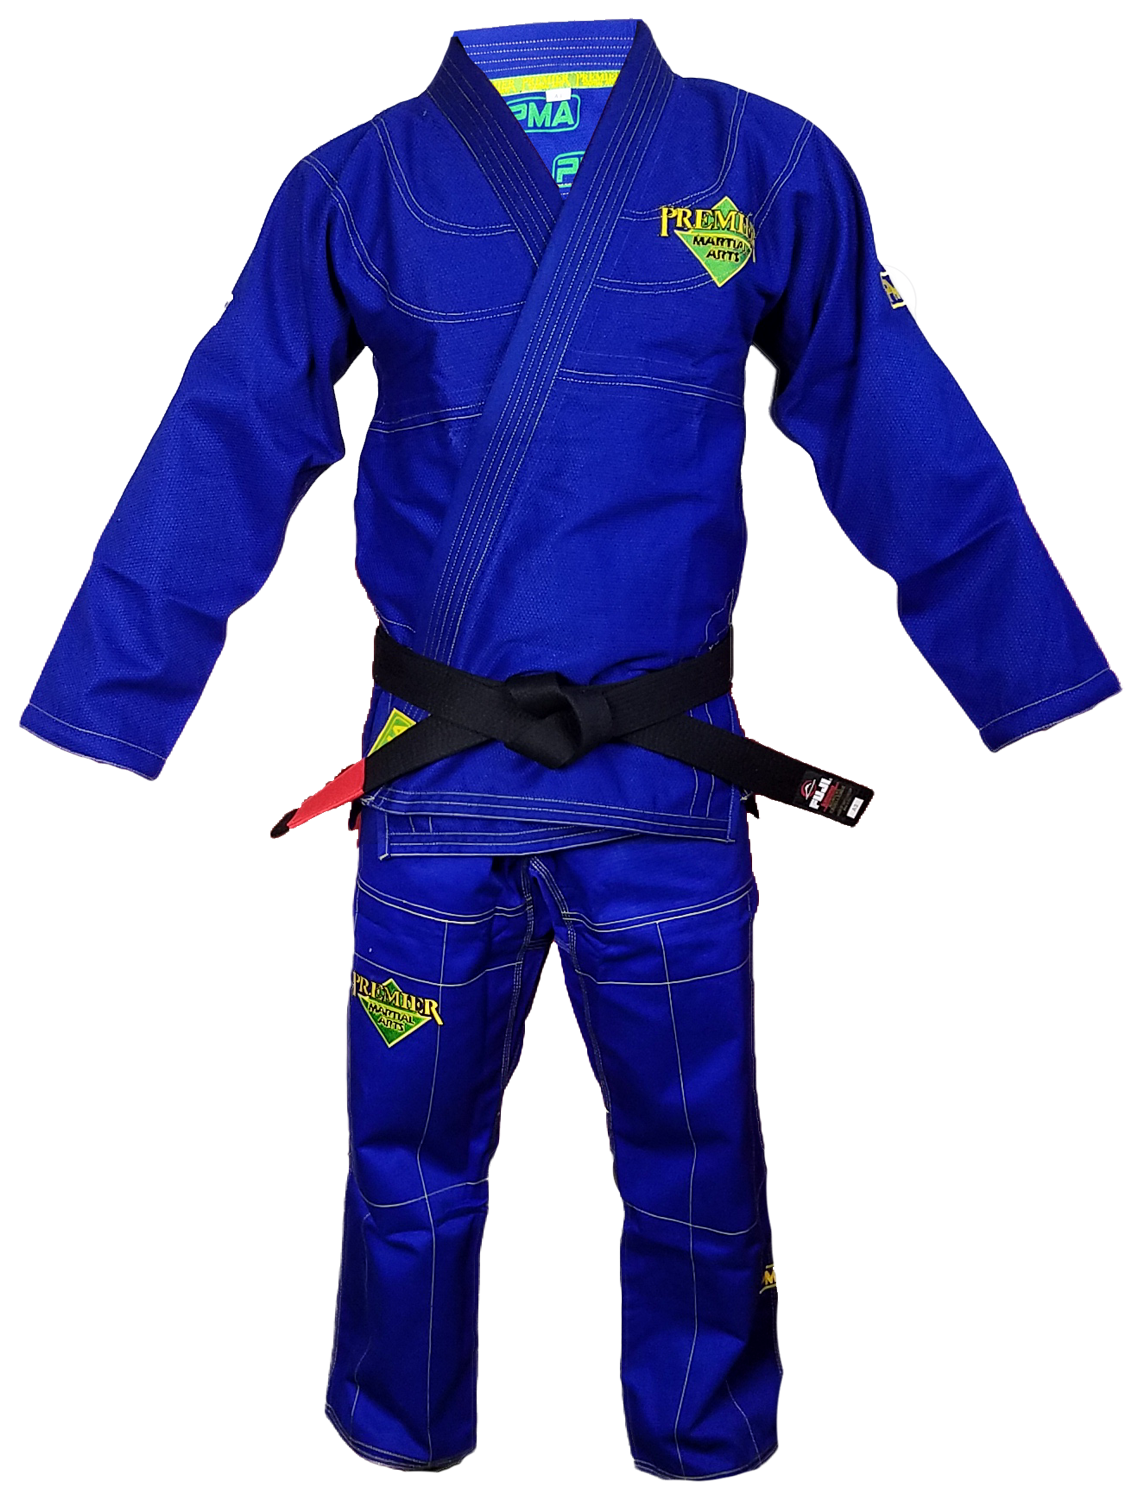 Premier Martial Arts Womens Gi